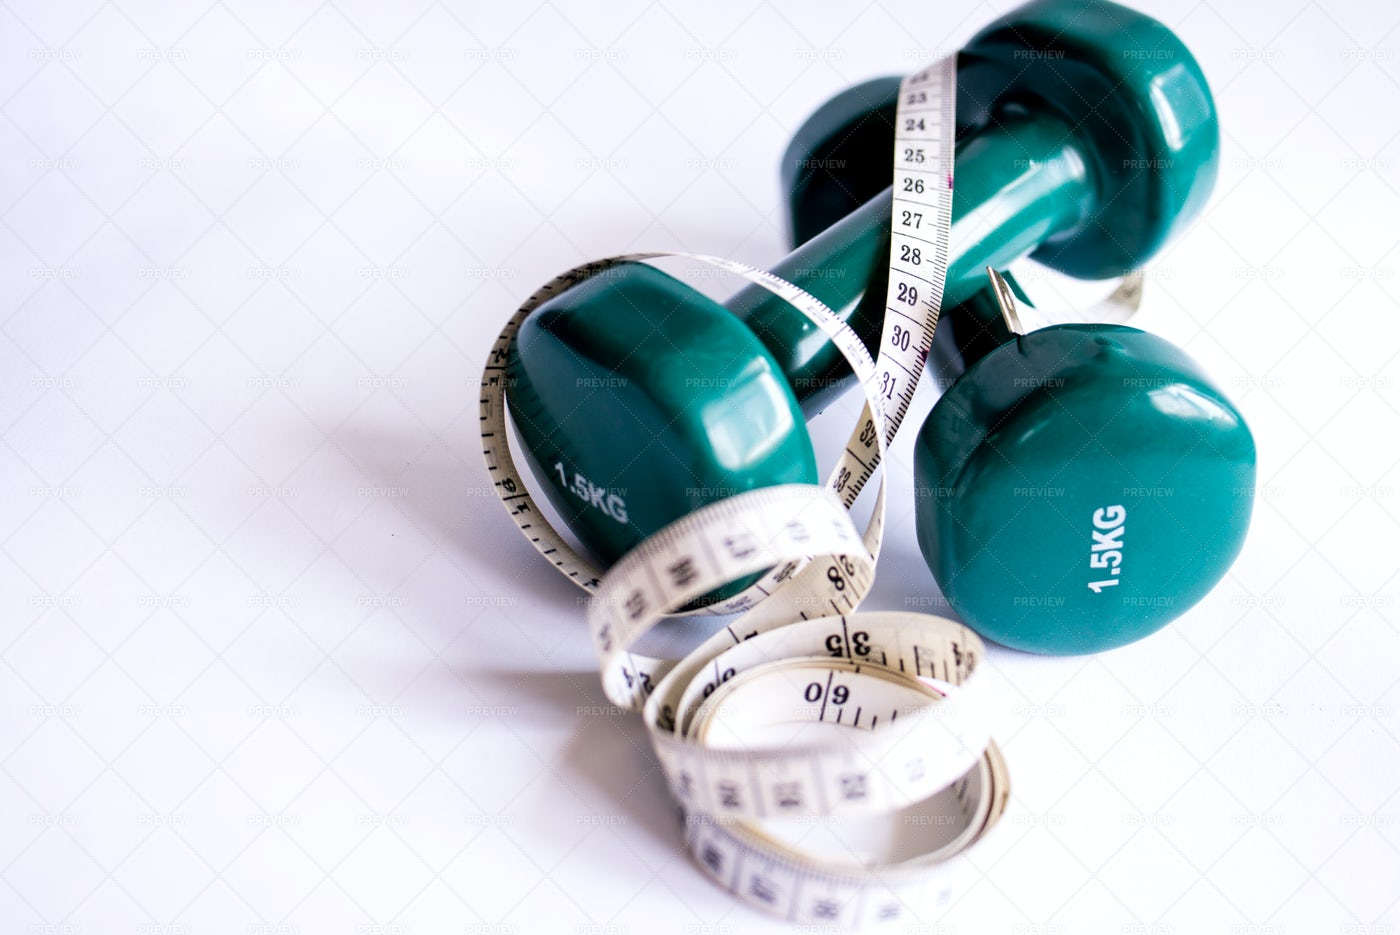 Dumbbells And Measuring Tape: Stock Photos